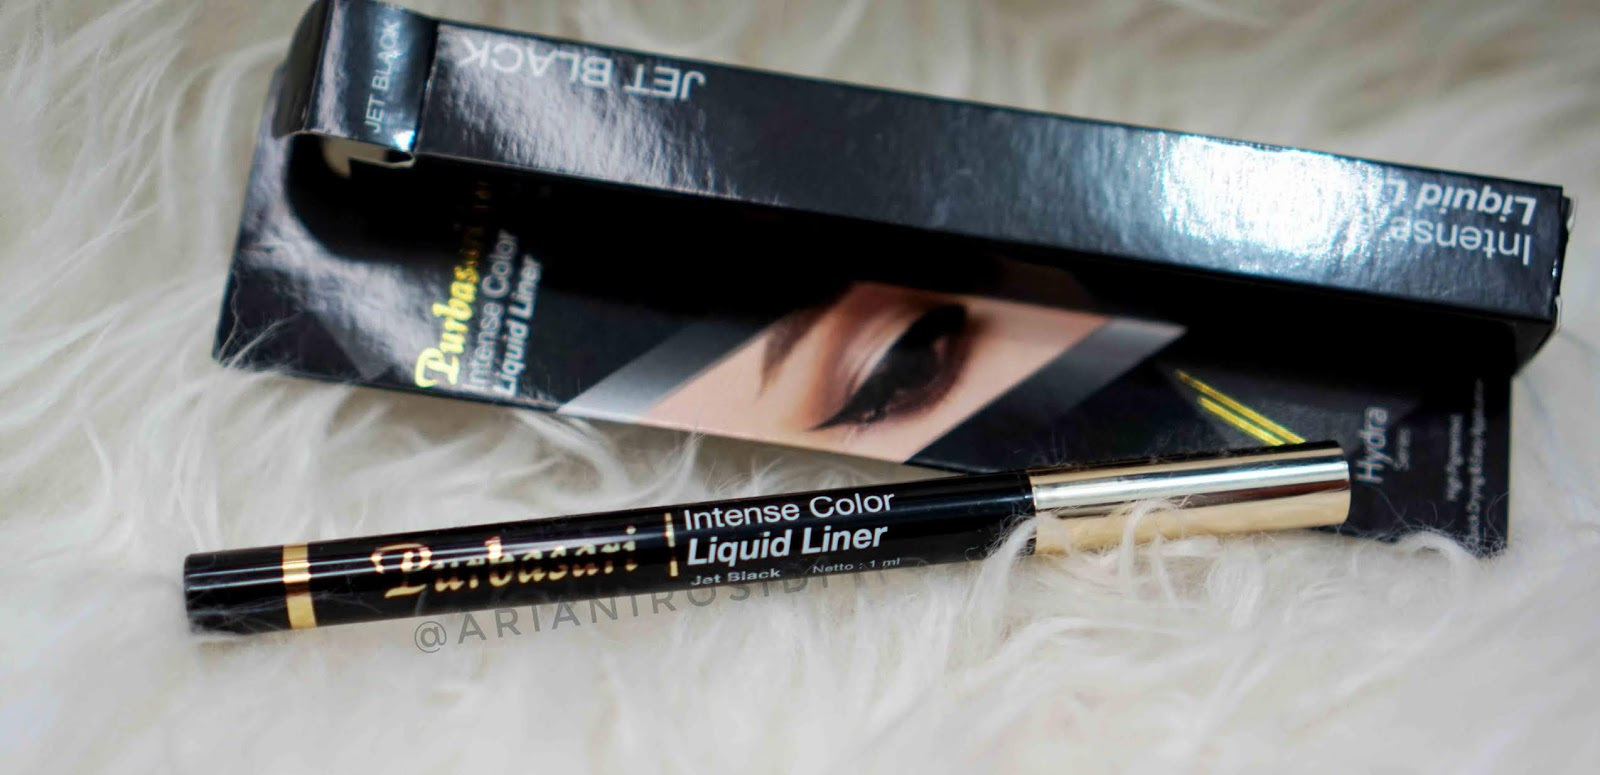 PURBASARI INTENSE COLOR LIQUID LINER